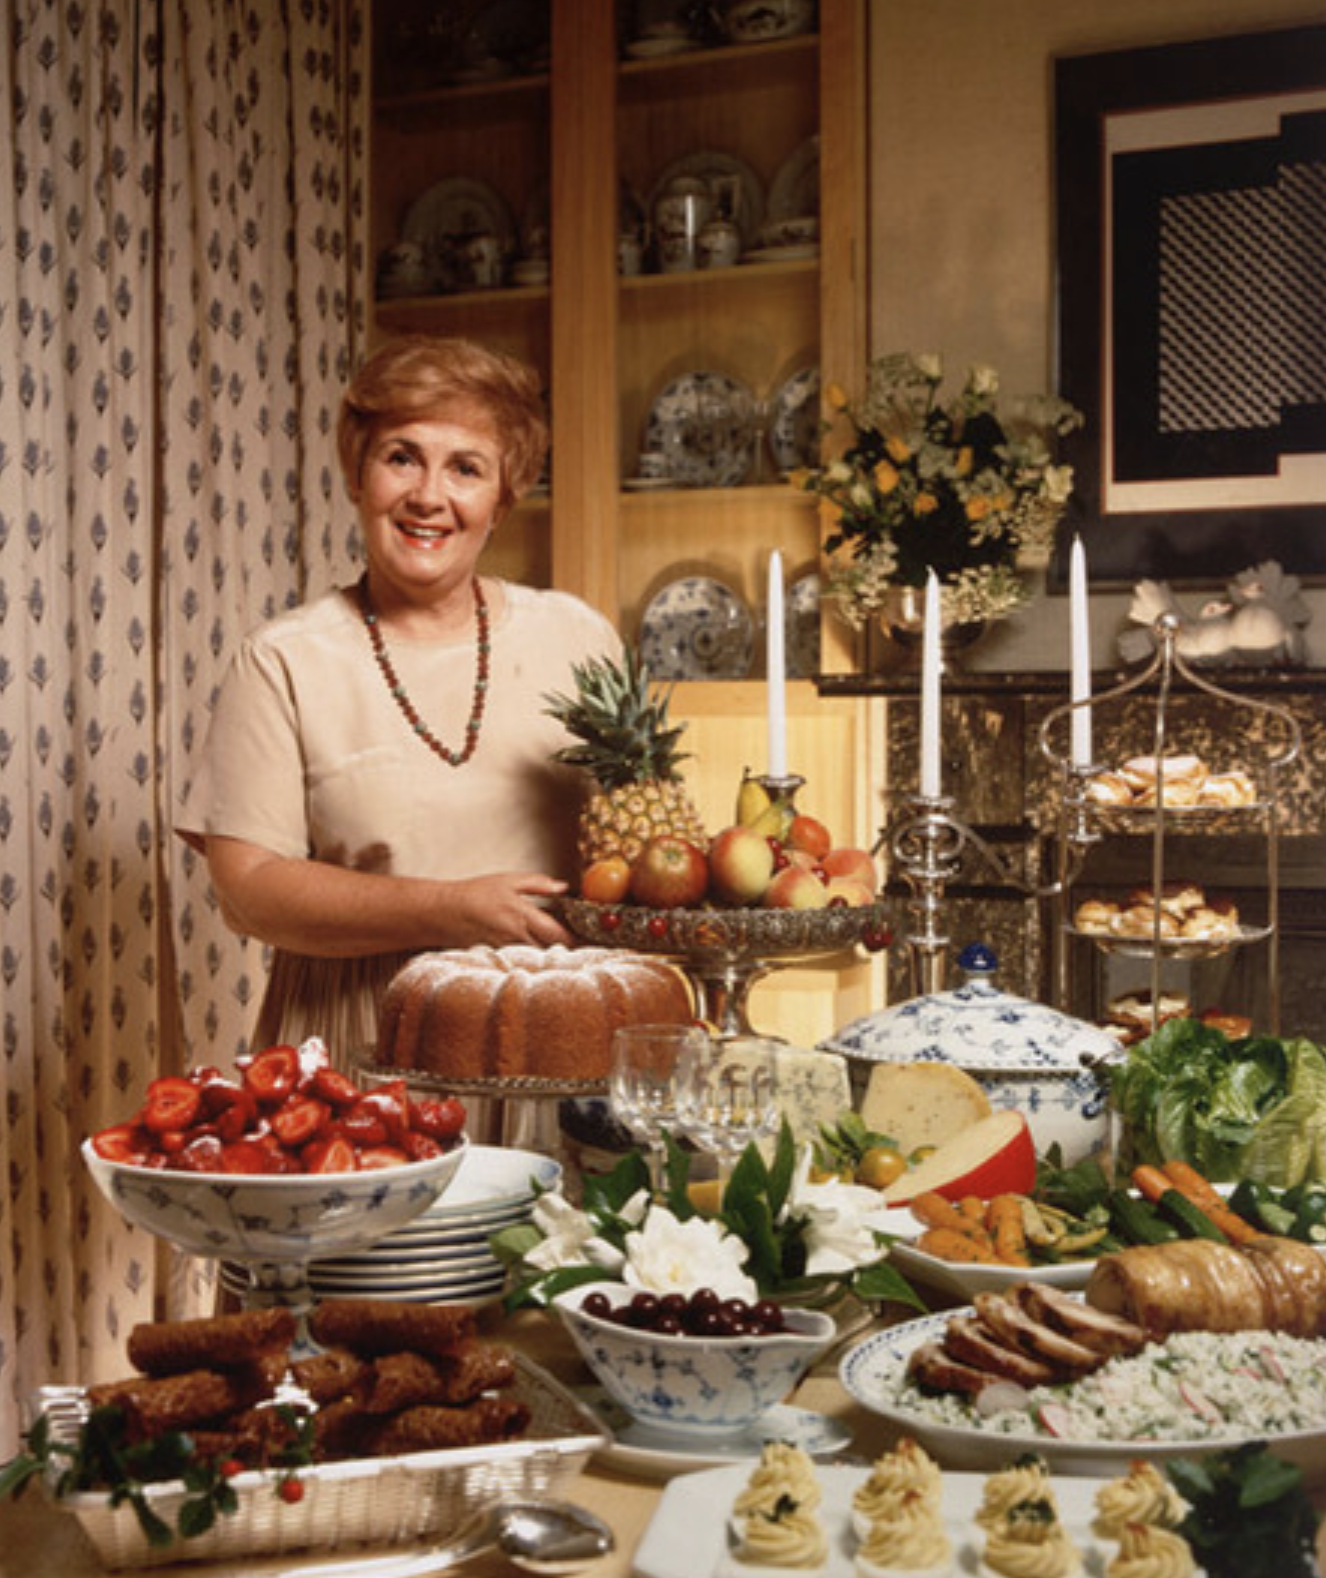 Margaret Fulton in the 1960s. Image: National Portrait Gallery.